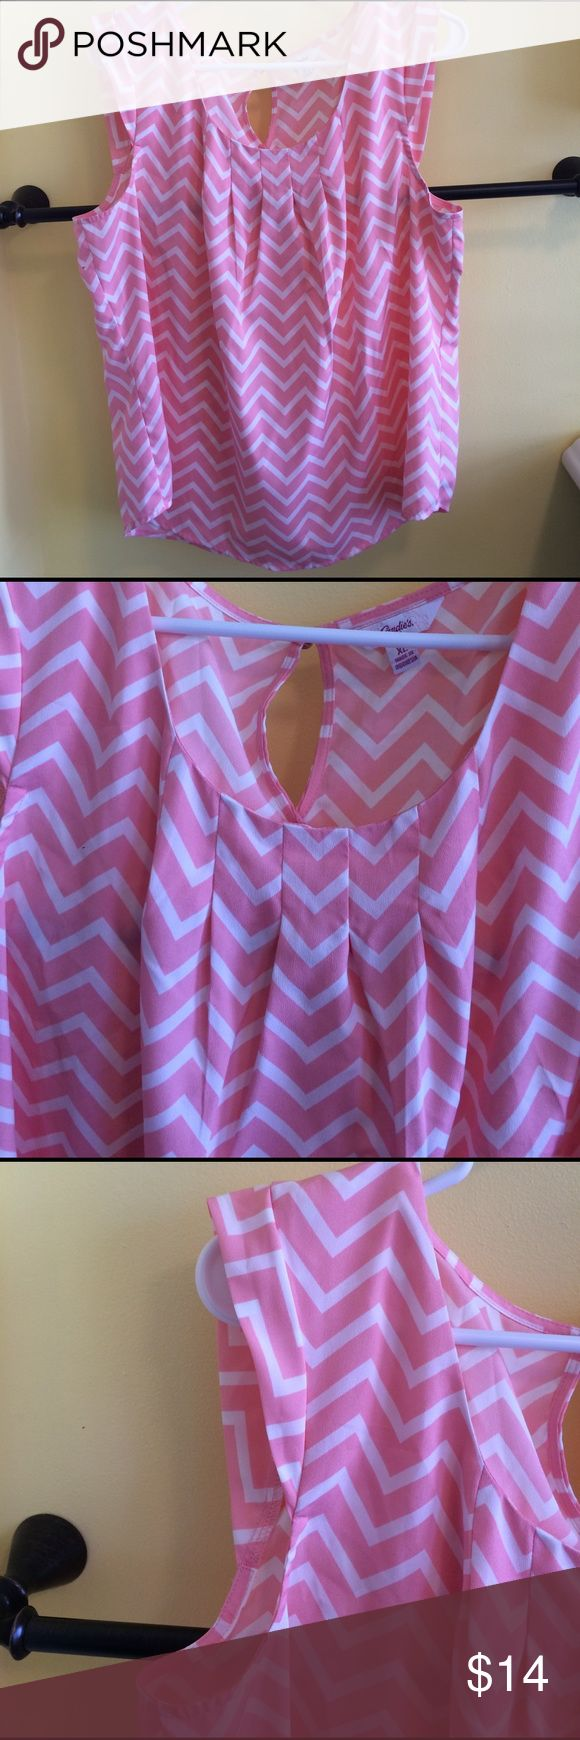 Pink chevron blouse Lightweight pink and white chevron blouse. Excellent used condition Candie's Tops Blouses